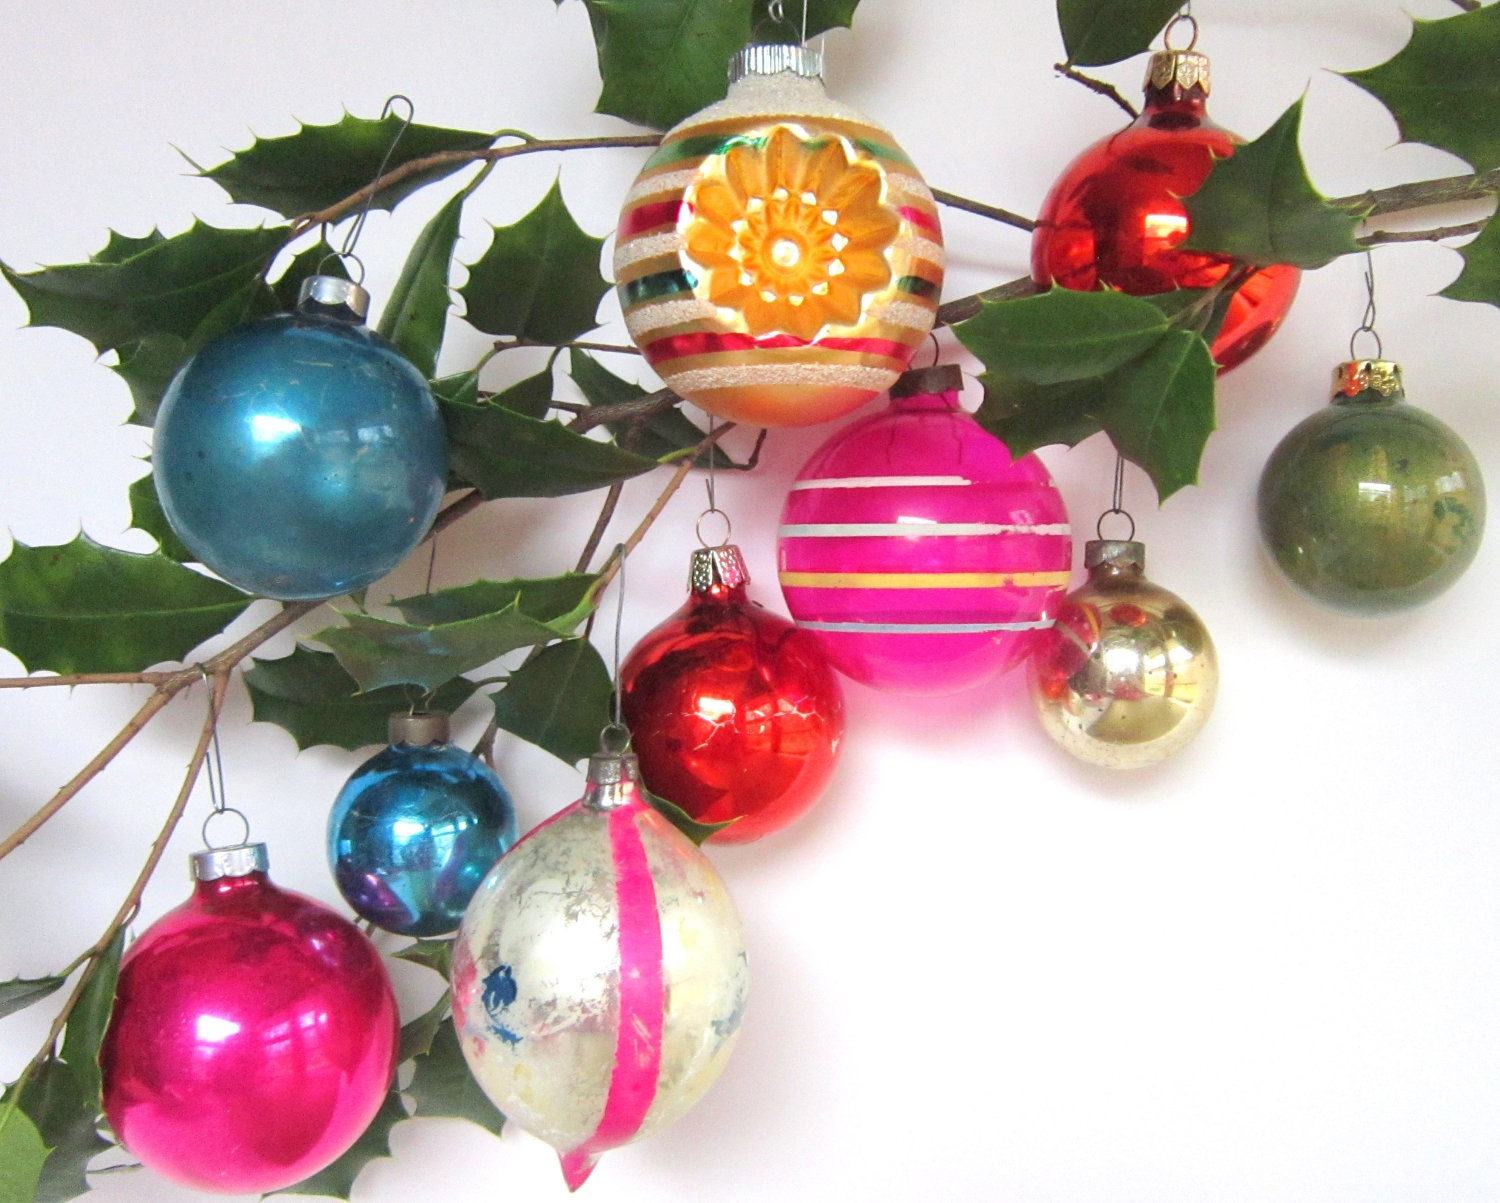 Sale shiny brite christmas ornaments vintage by for Christmas ornaments sale